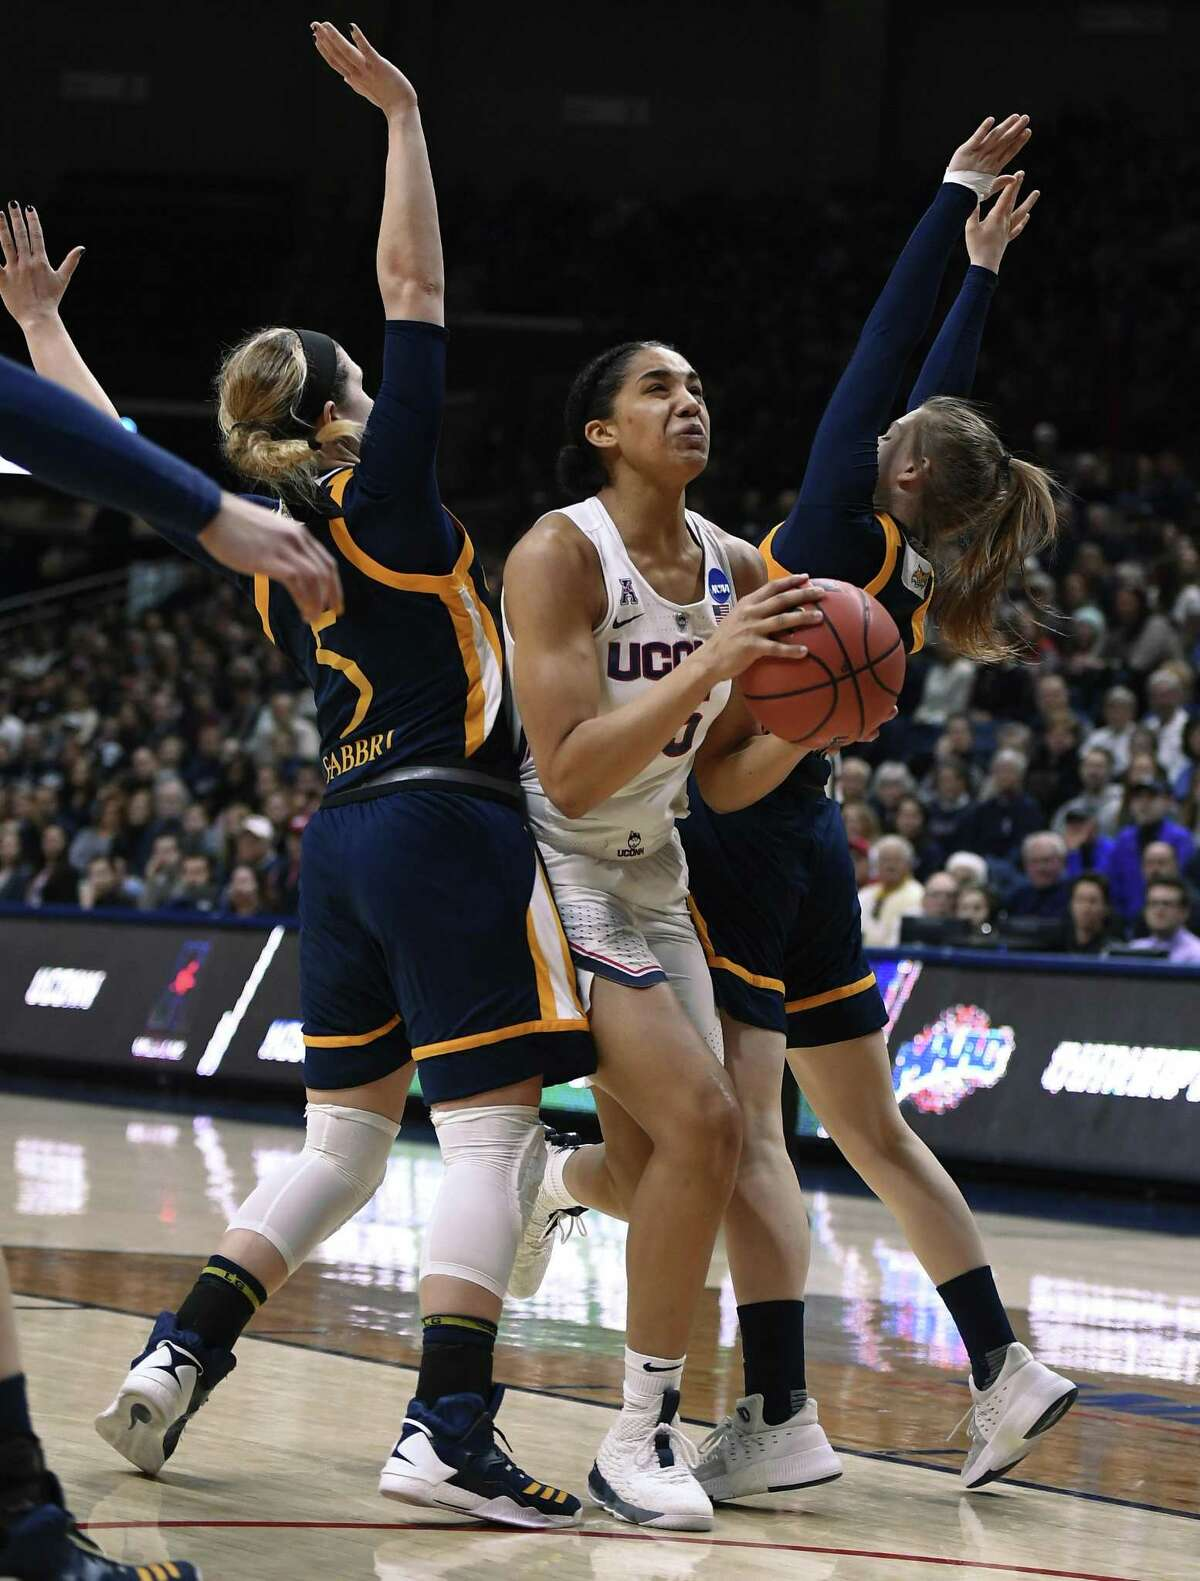 UConn's Gabby Williams, center, splits the defense of Quinnipiac's Carly Fabbri, left, and Edel Thornton Monday in Storrs.